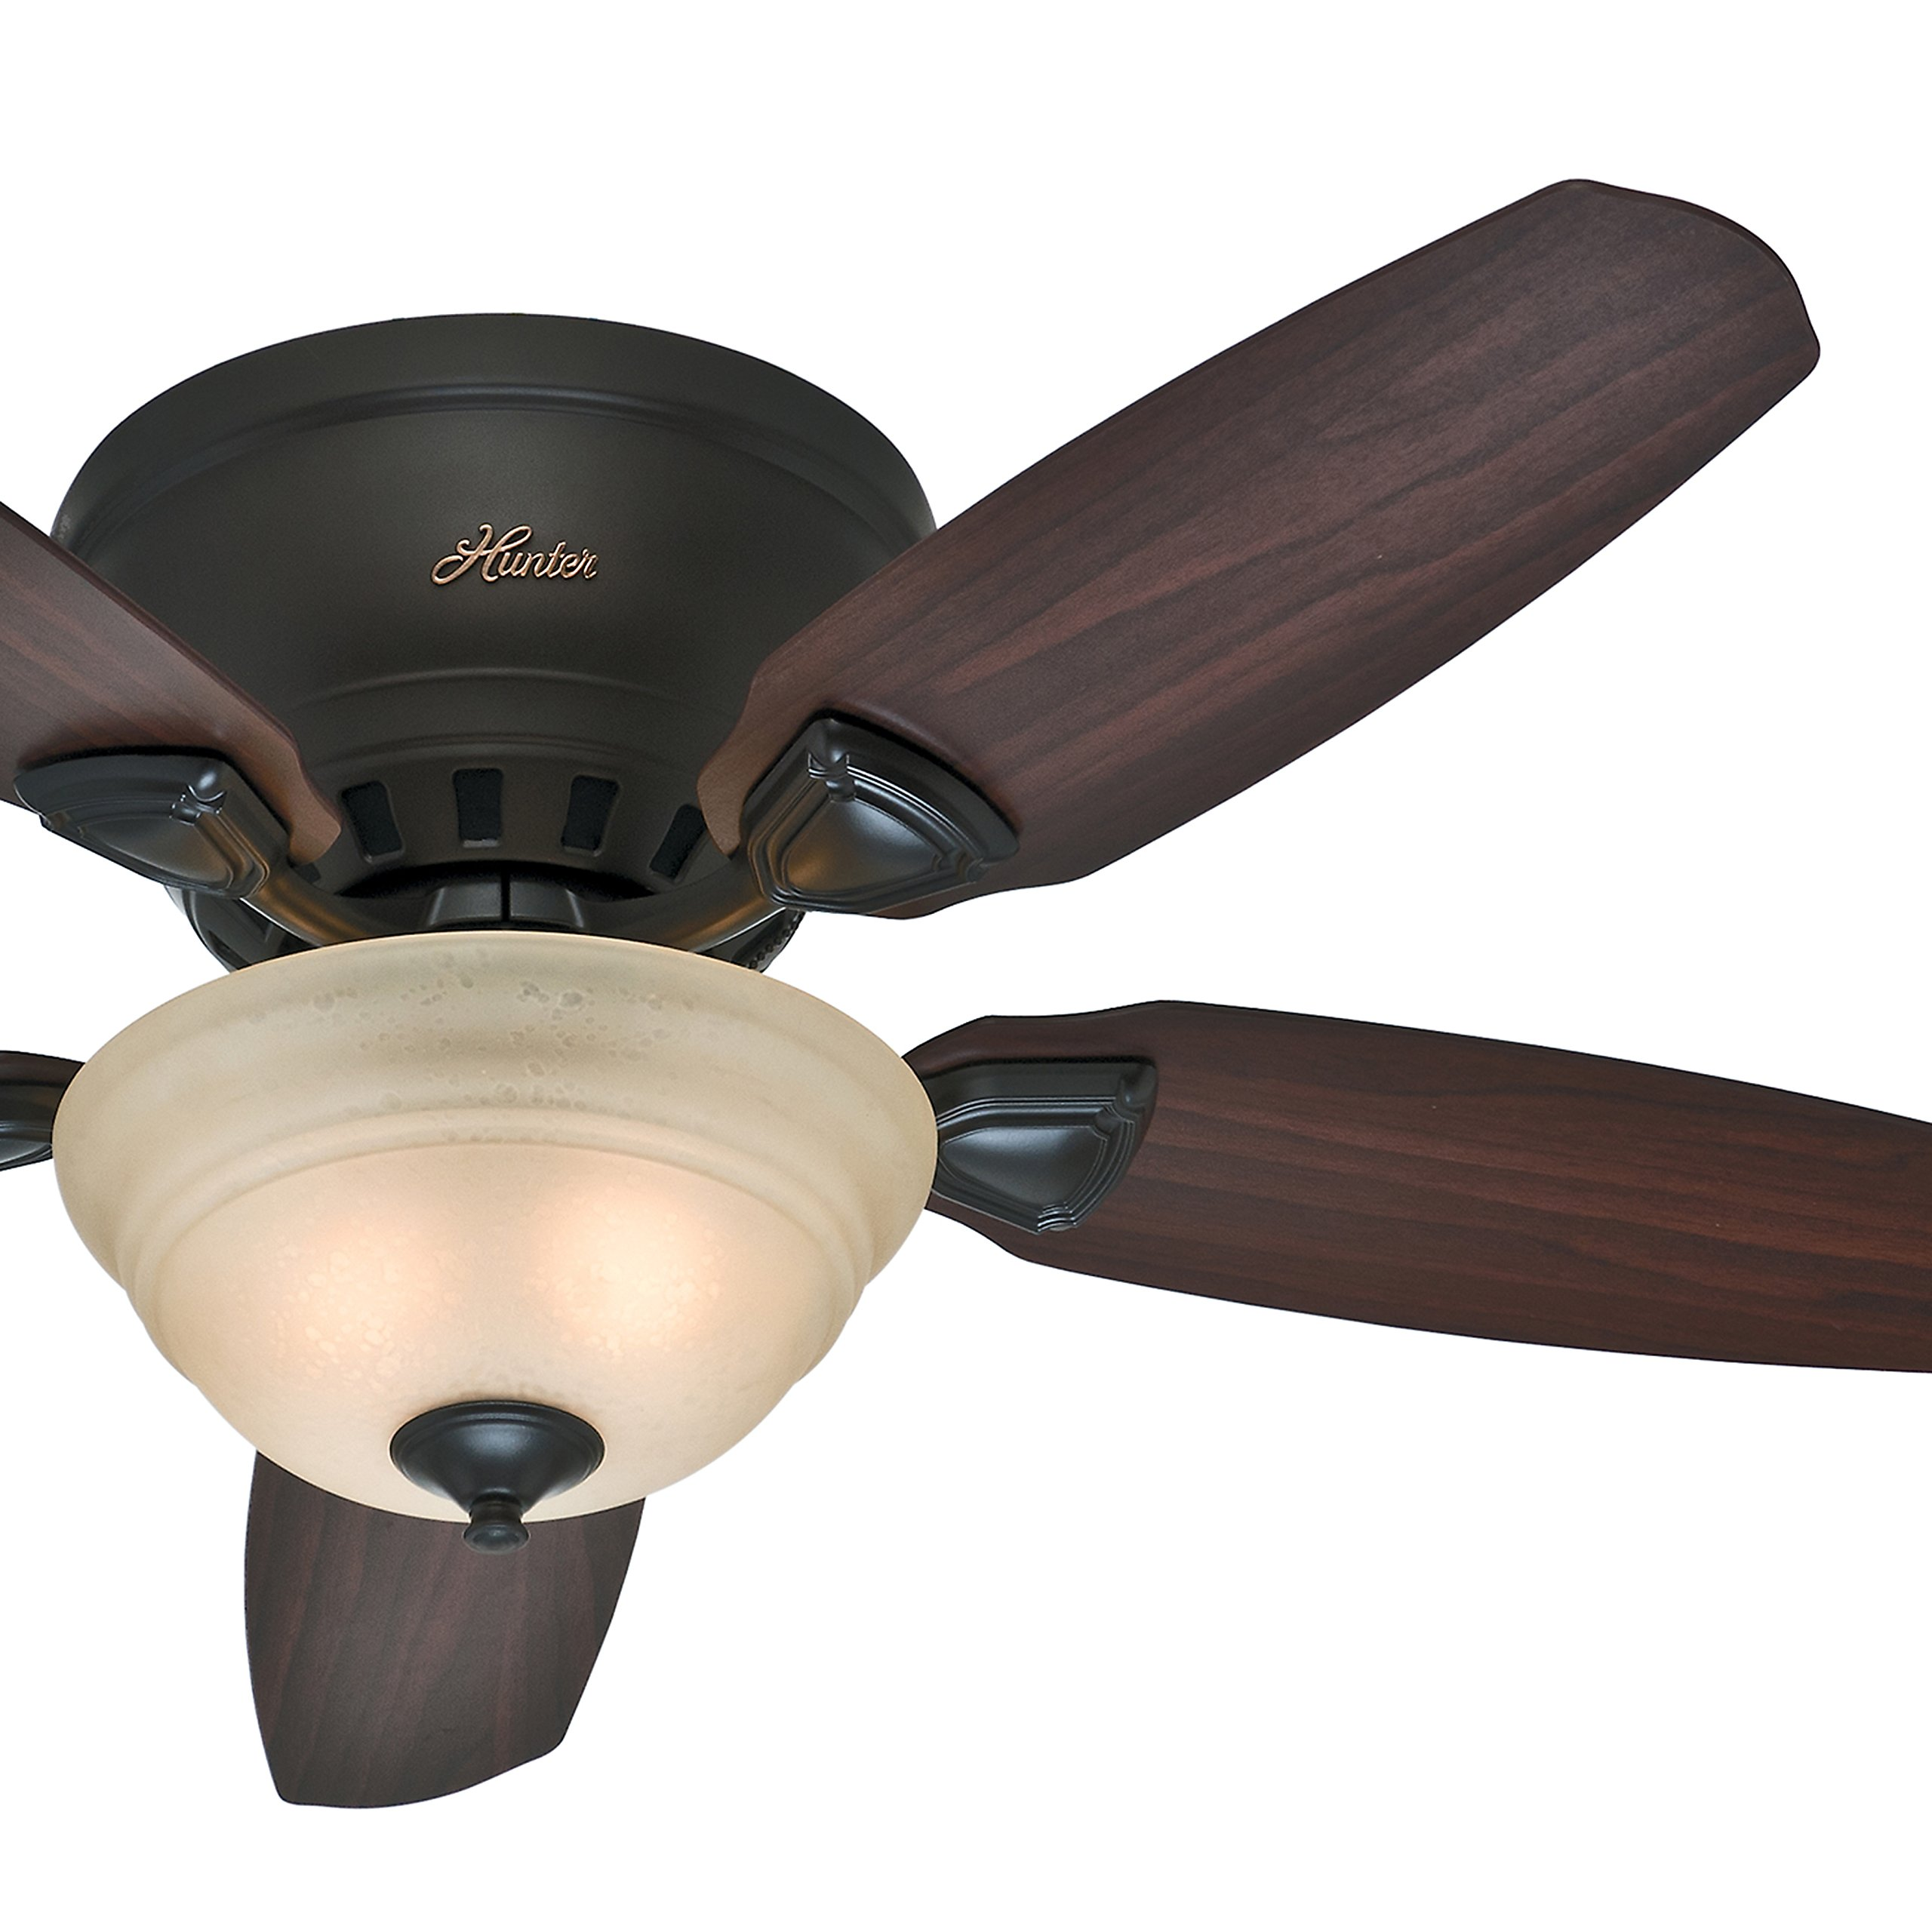 leaf parts fan fans replacement monte in discus ceiling ideas feiss fancy home blades m cool decoration bronze light for murray montecarlofans classy ceilings carlo finish